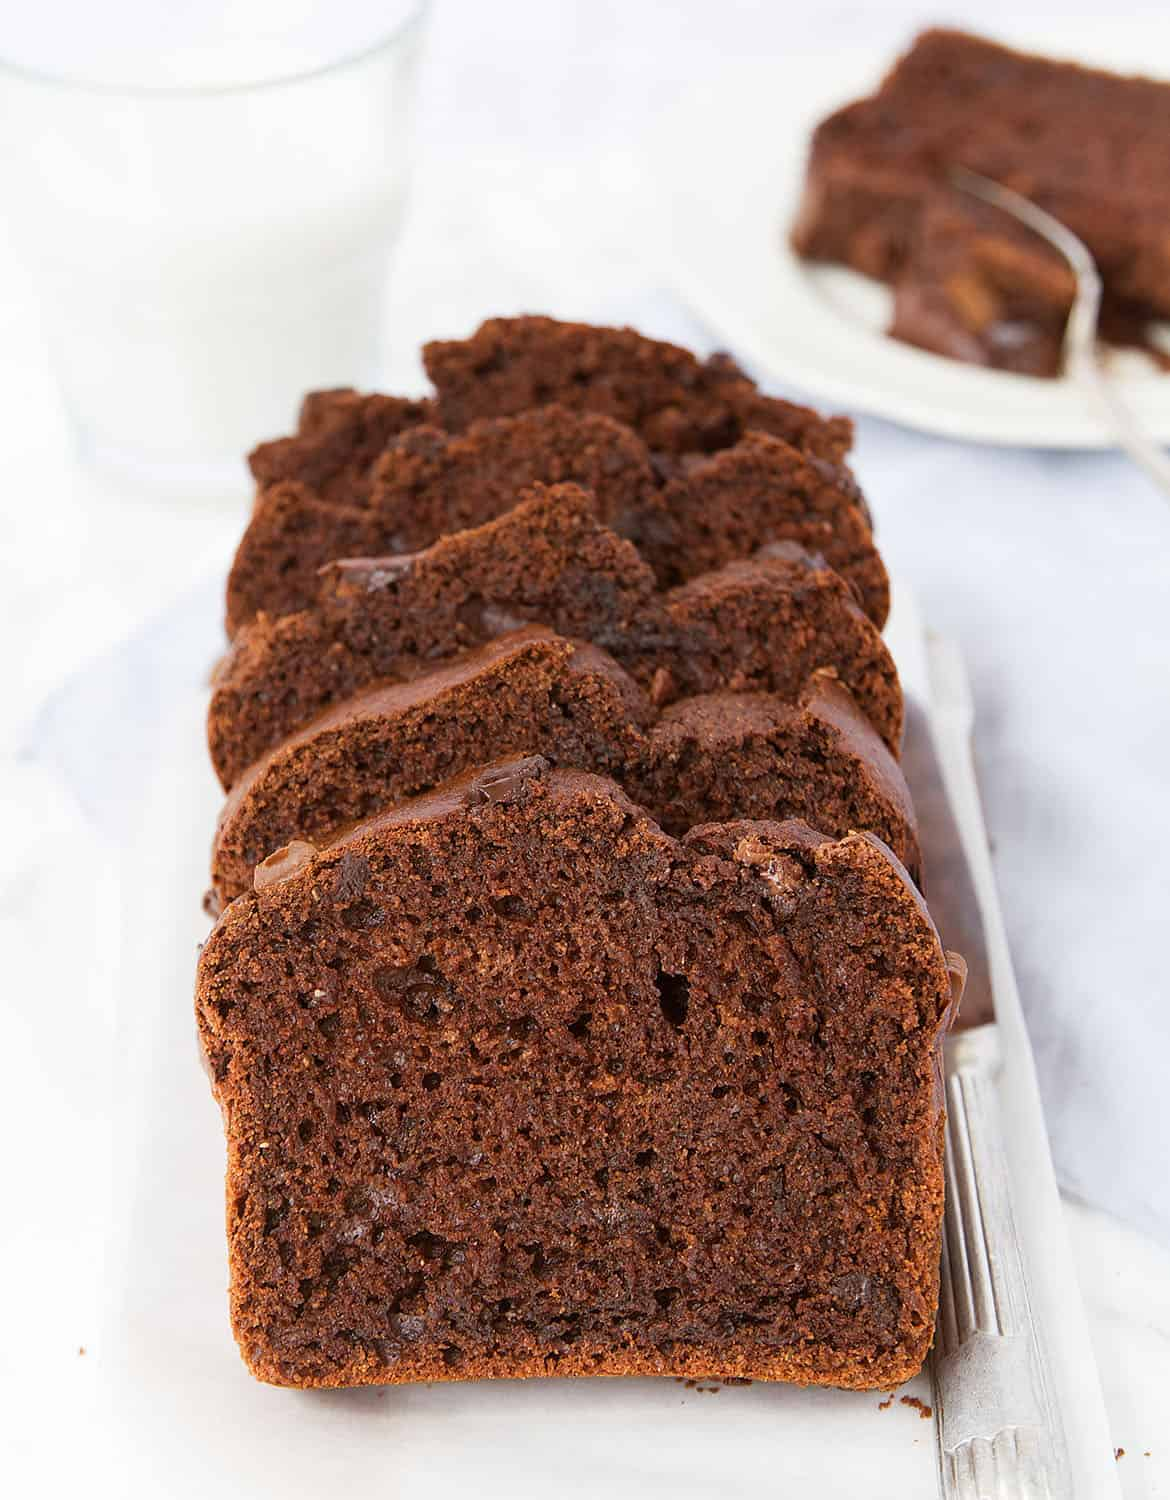 BEST HEALTHY CAKE RECIPES: HEALTHY BLENDER CHOCOLATE ZUCCHINI BREAD by The Clever Meal